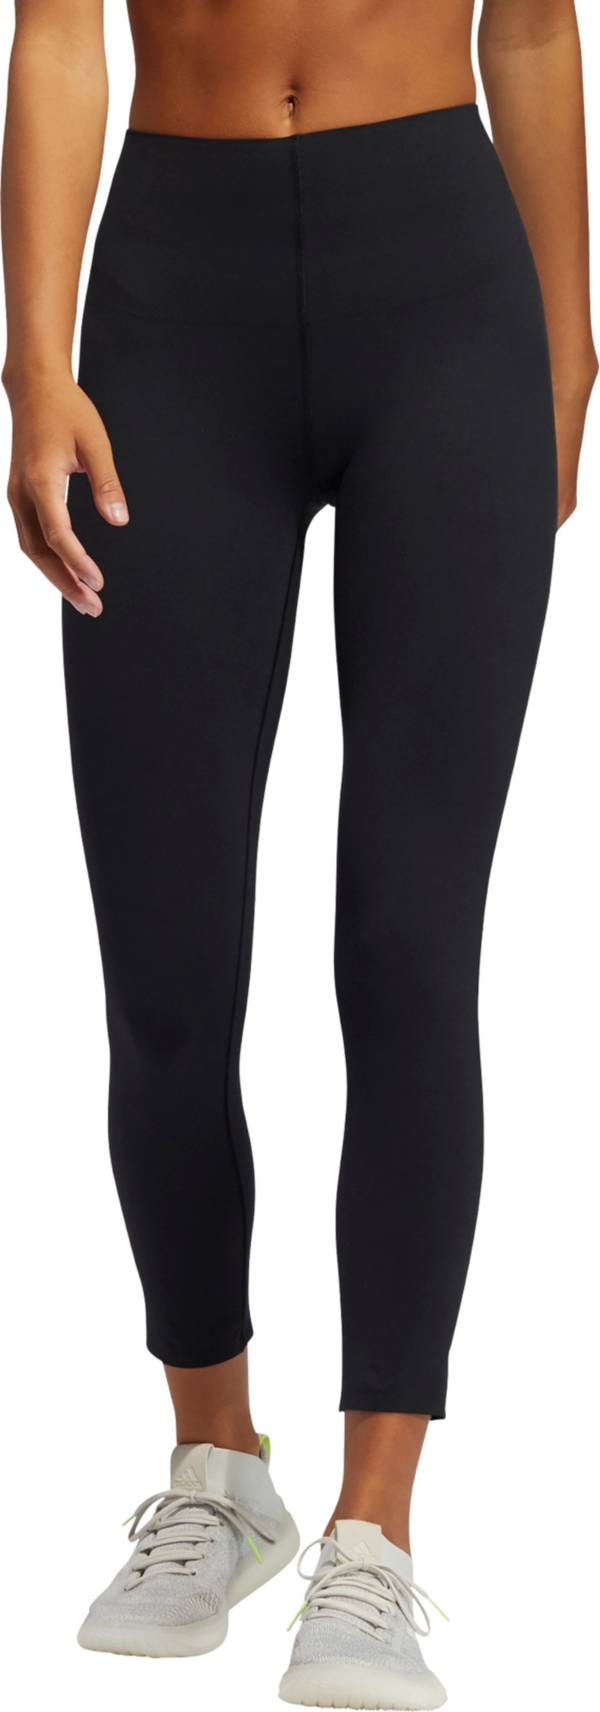 adidas Women's Elevated Yoga Flow 7/8 Tights product image